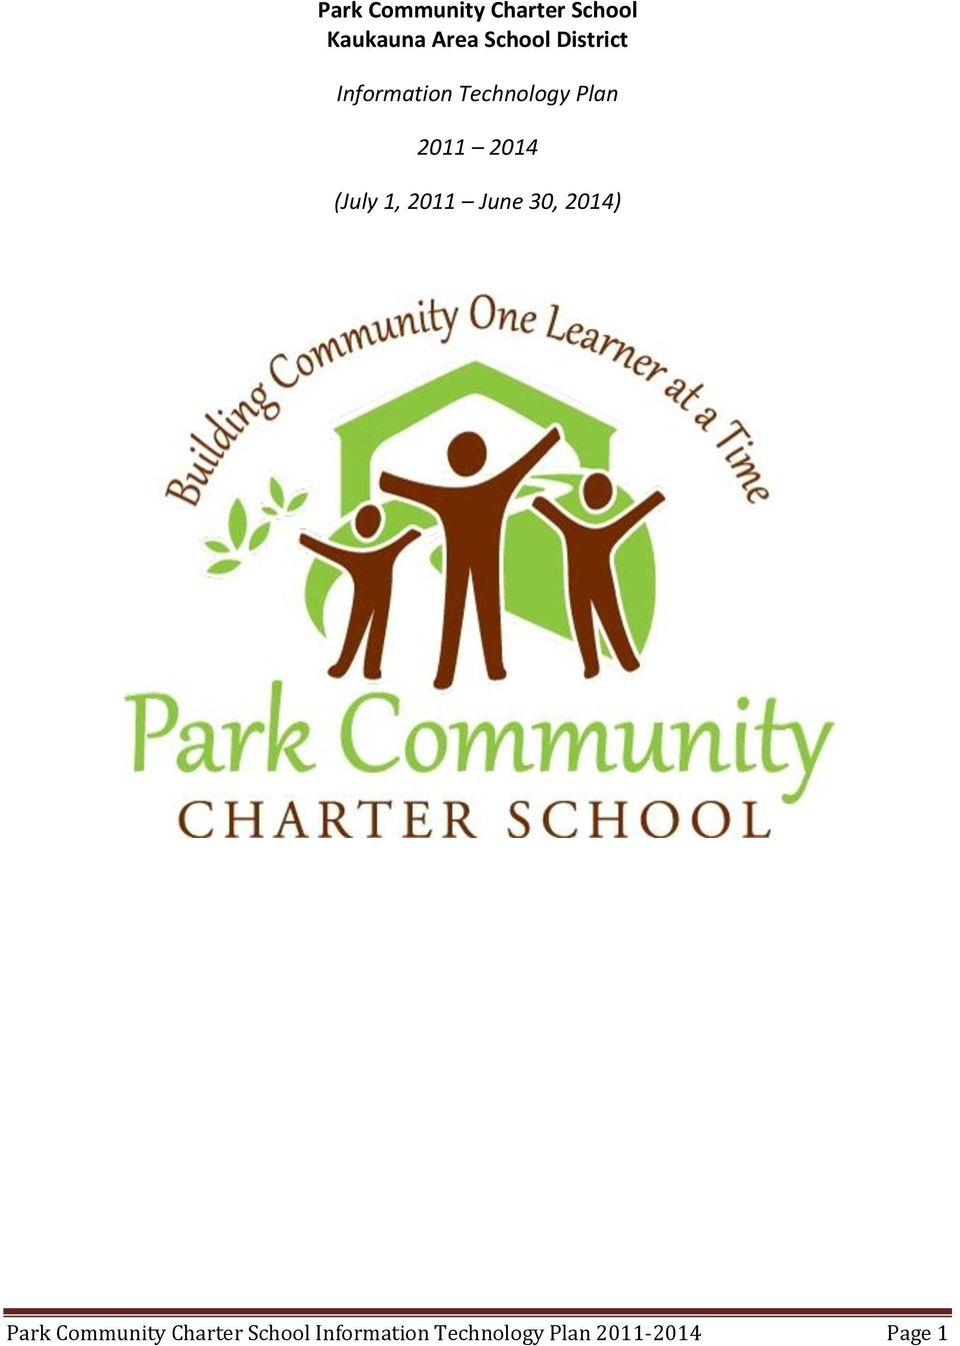 (July 1, 2011 June 30, 2014) Park Community